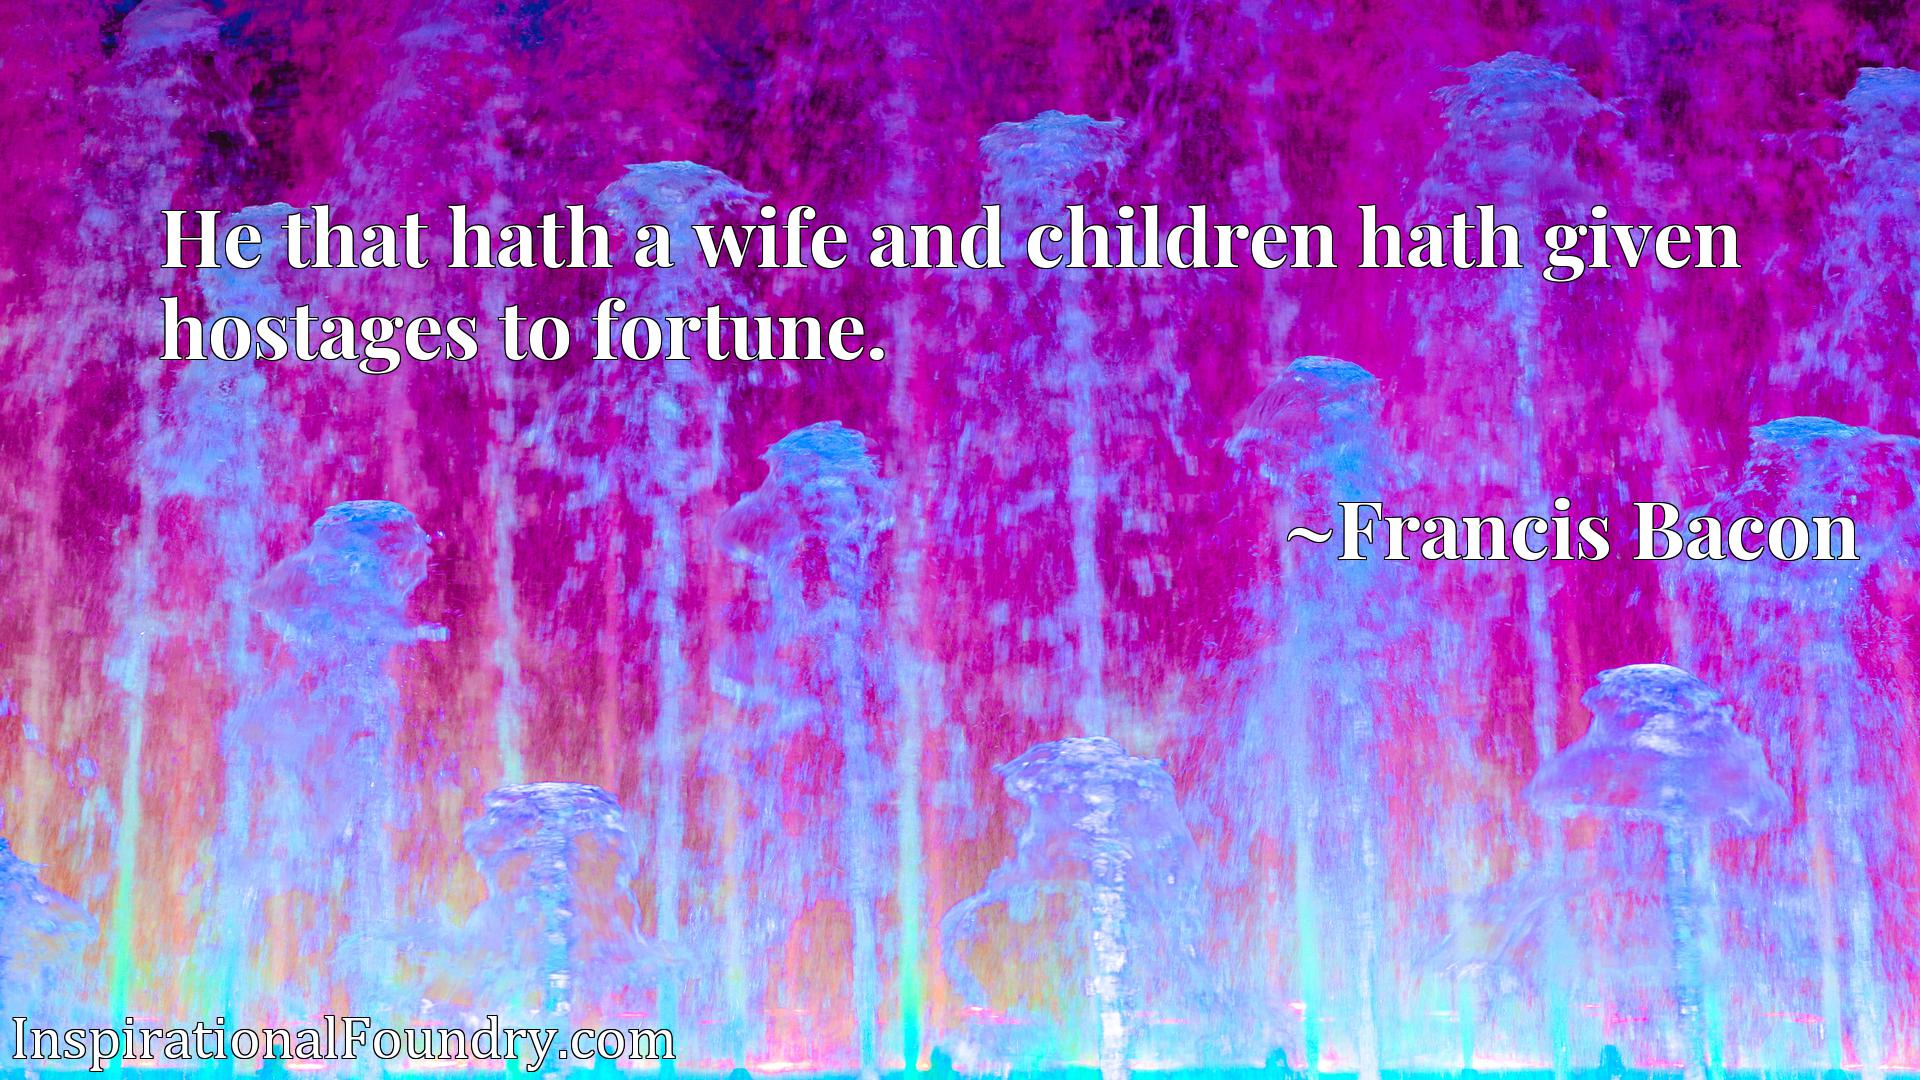 He that hath a wife and children hath given hostages to fortune.